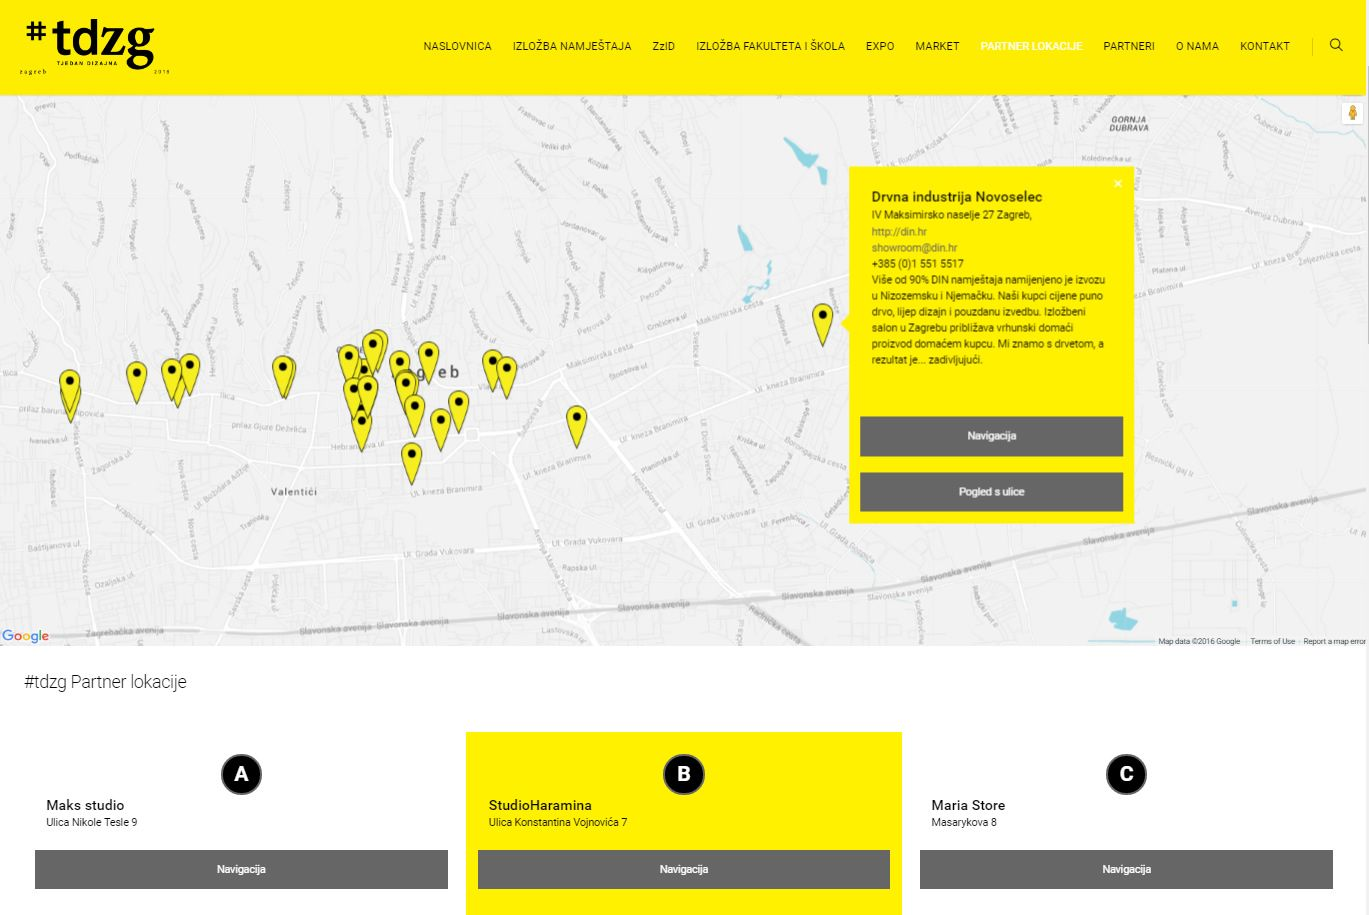 Find Design Week Zagreb Tdzg Partner Locations Http Www Tjedandizajna Com 2016 Partner Lokacije Superstorefinder Googlemaps Map Store Map Google Maps